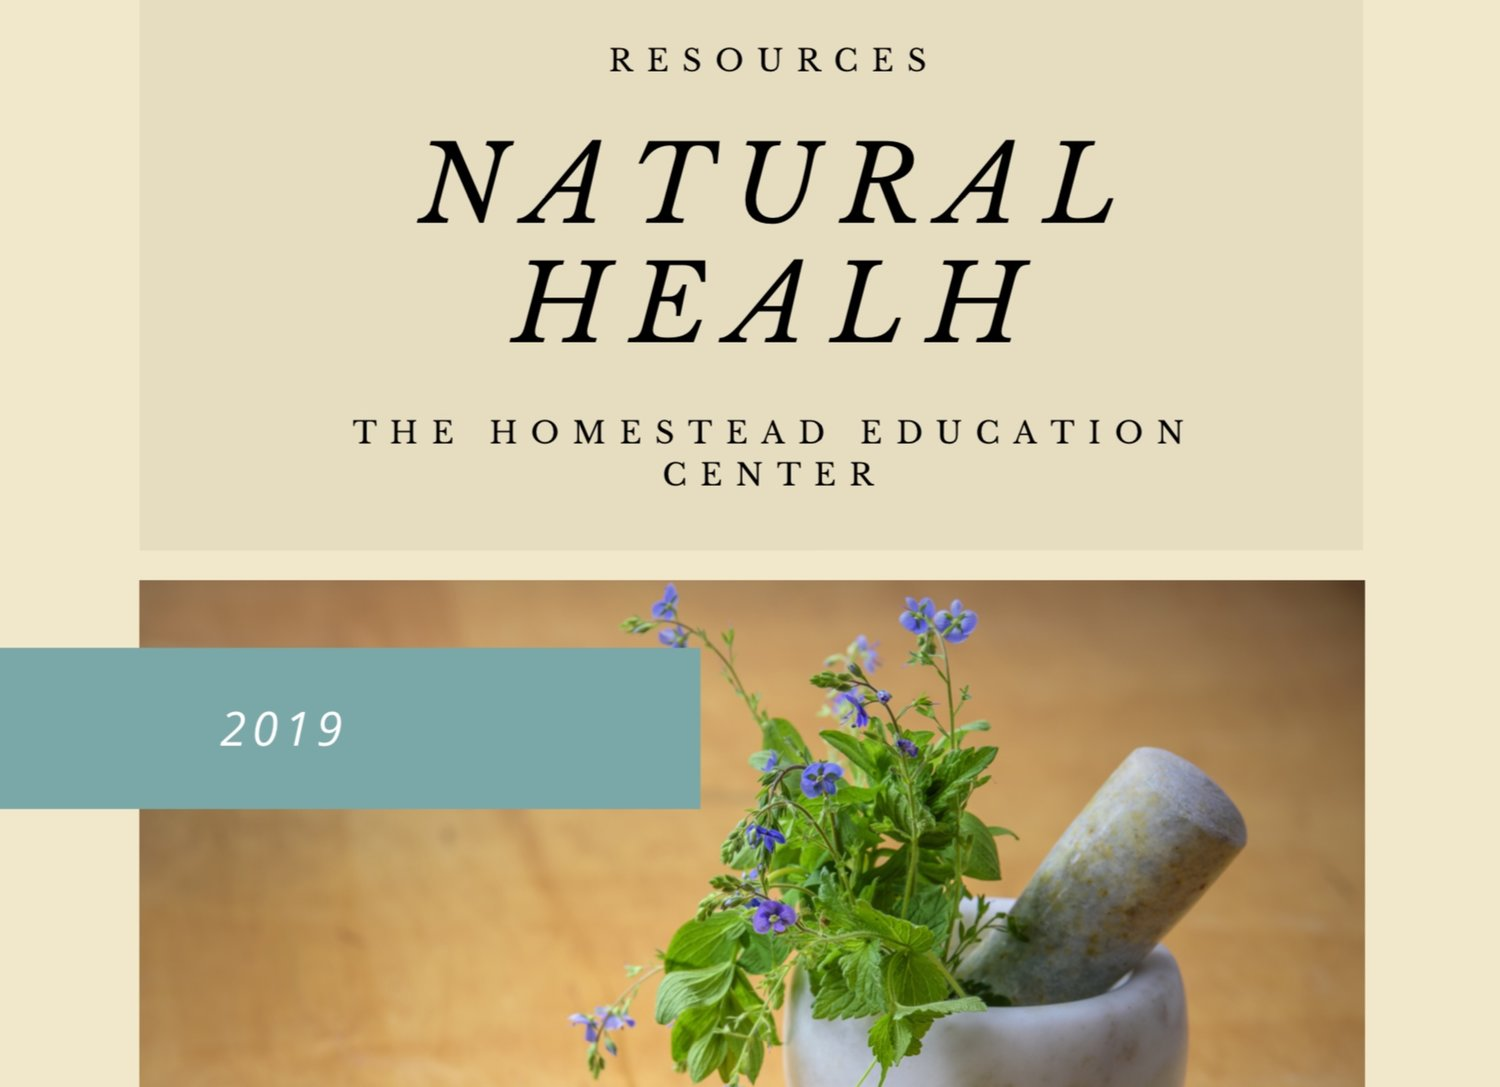 Click image to download the Natural Health Resource Guide